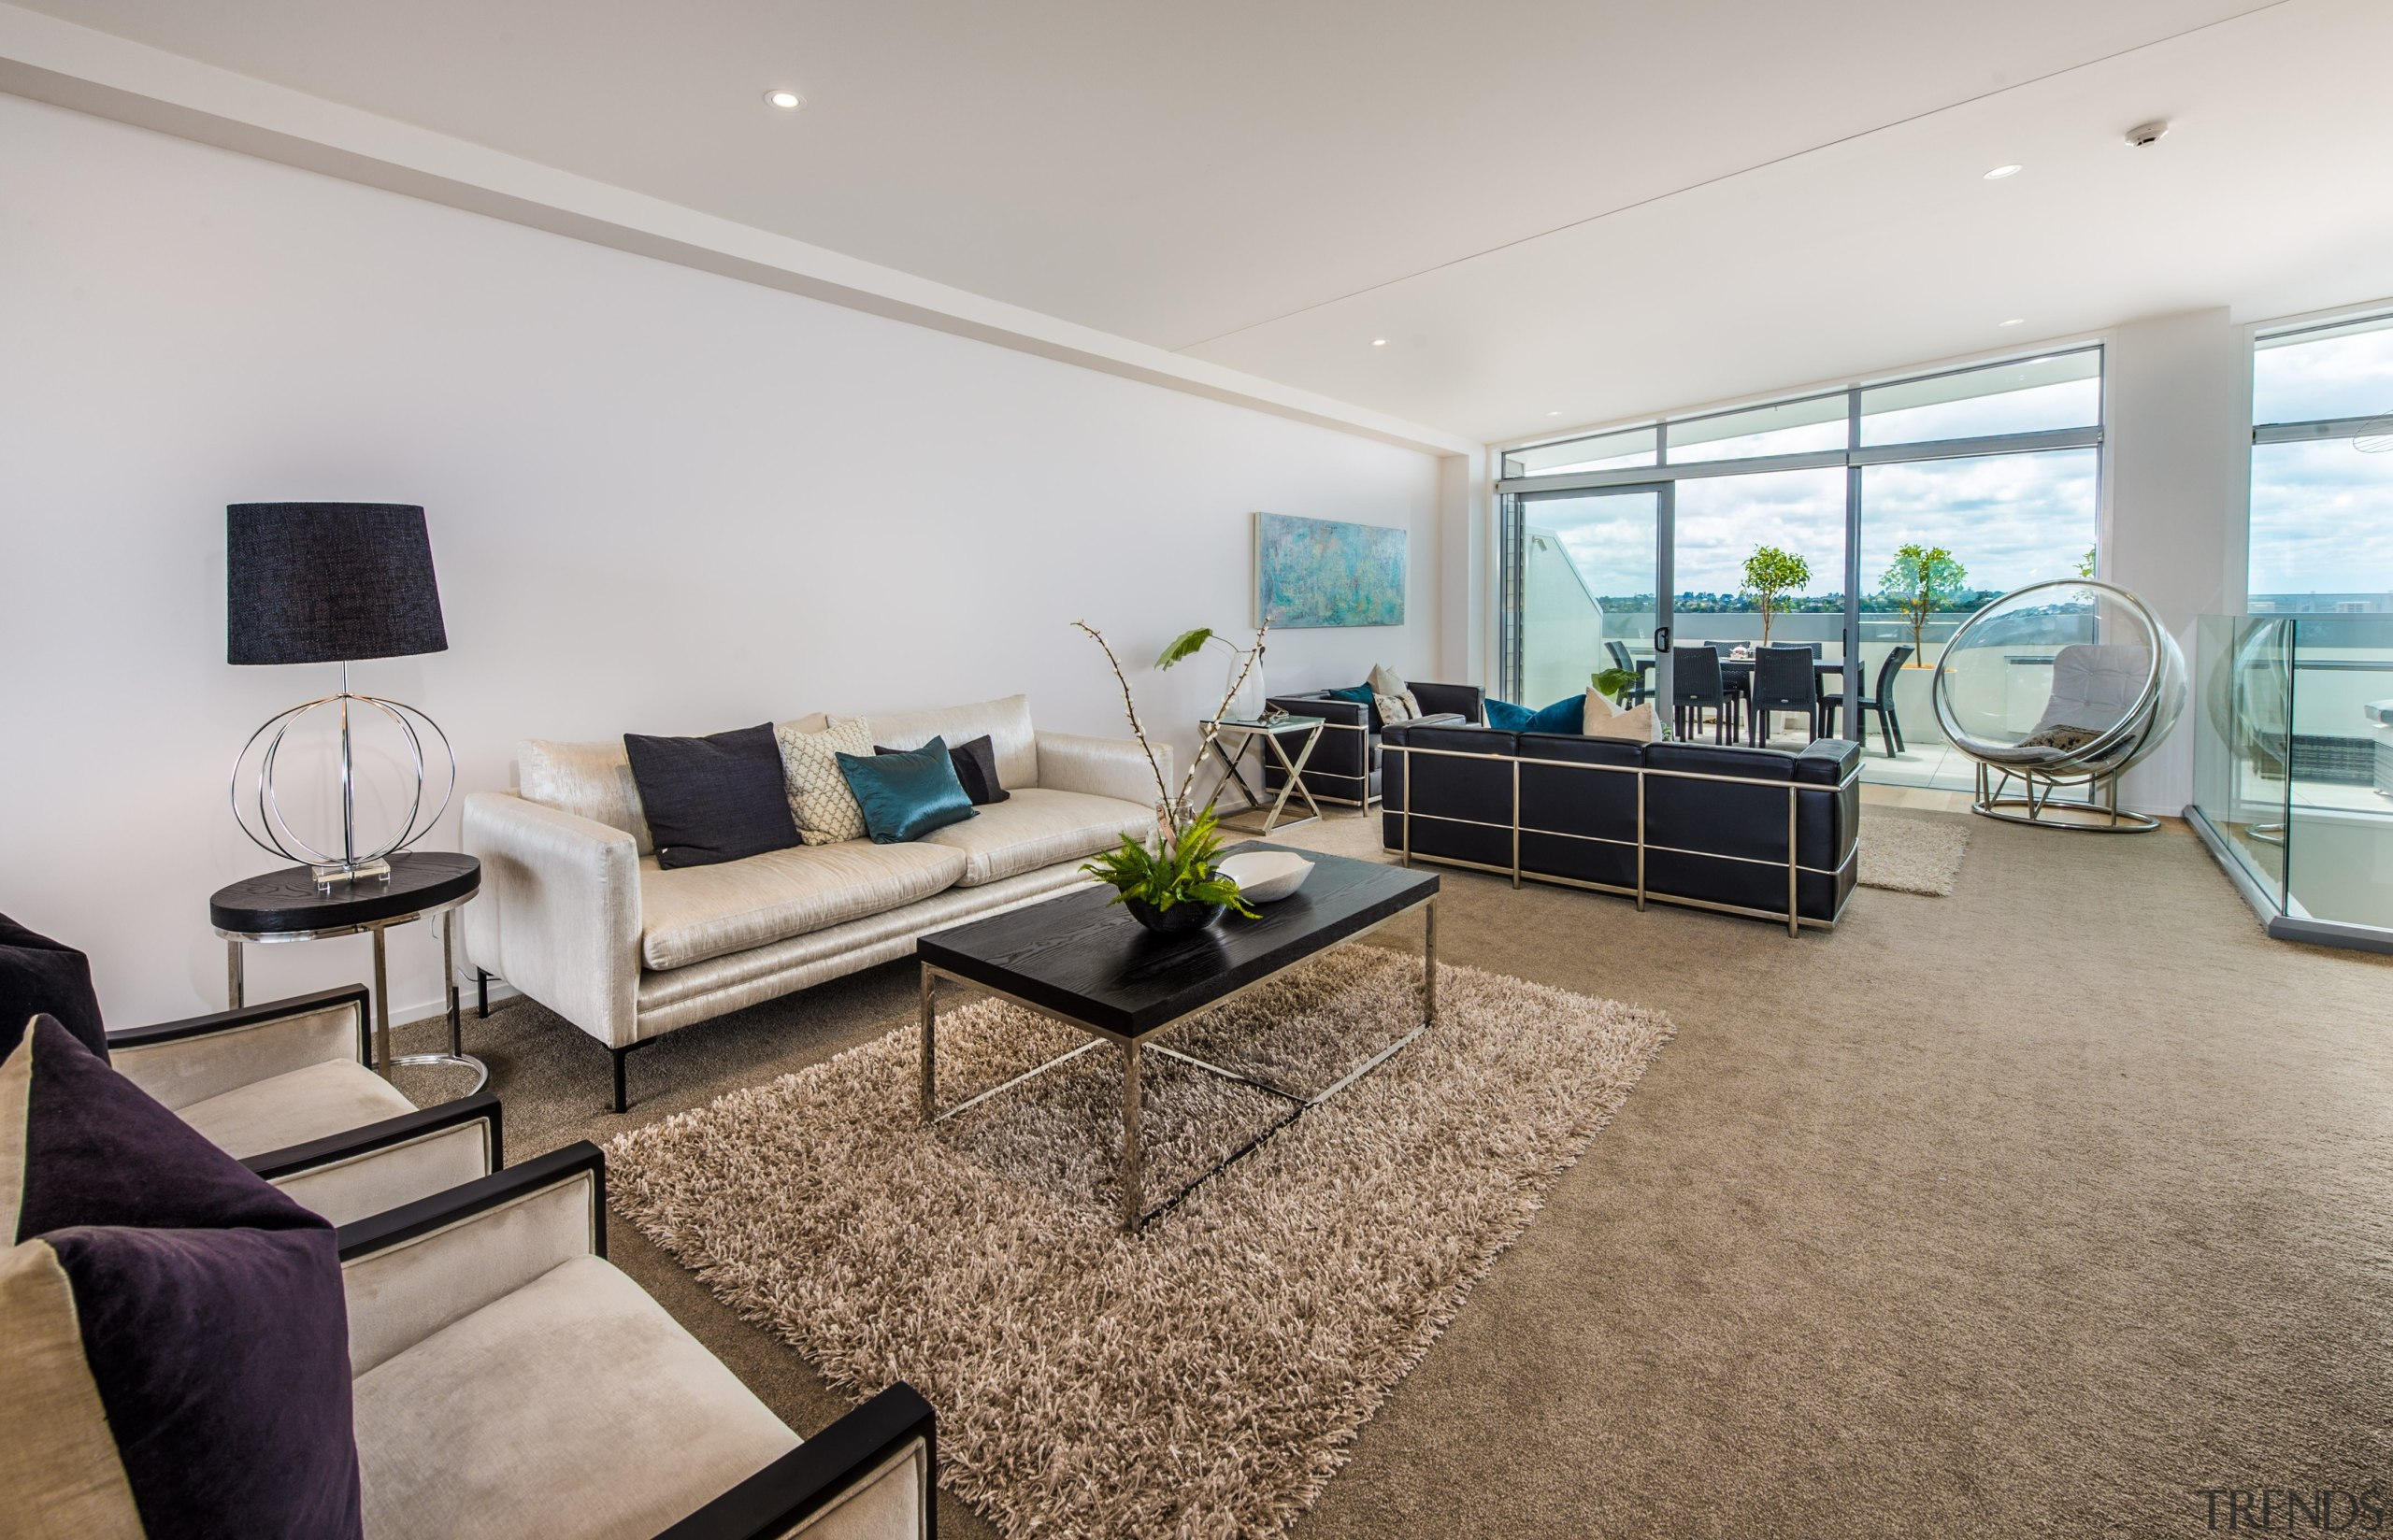 Ample living room - Ample living room - estate, floor, interior design, living room, penthouse apartment, property, real estate, room, gray